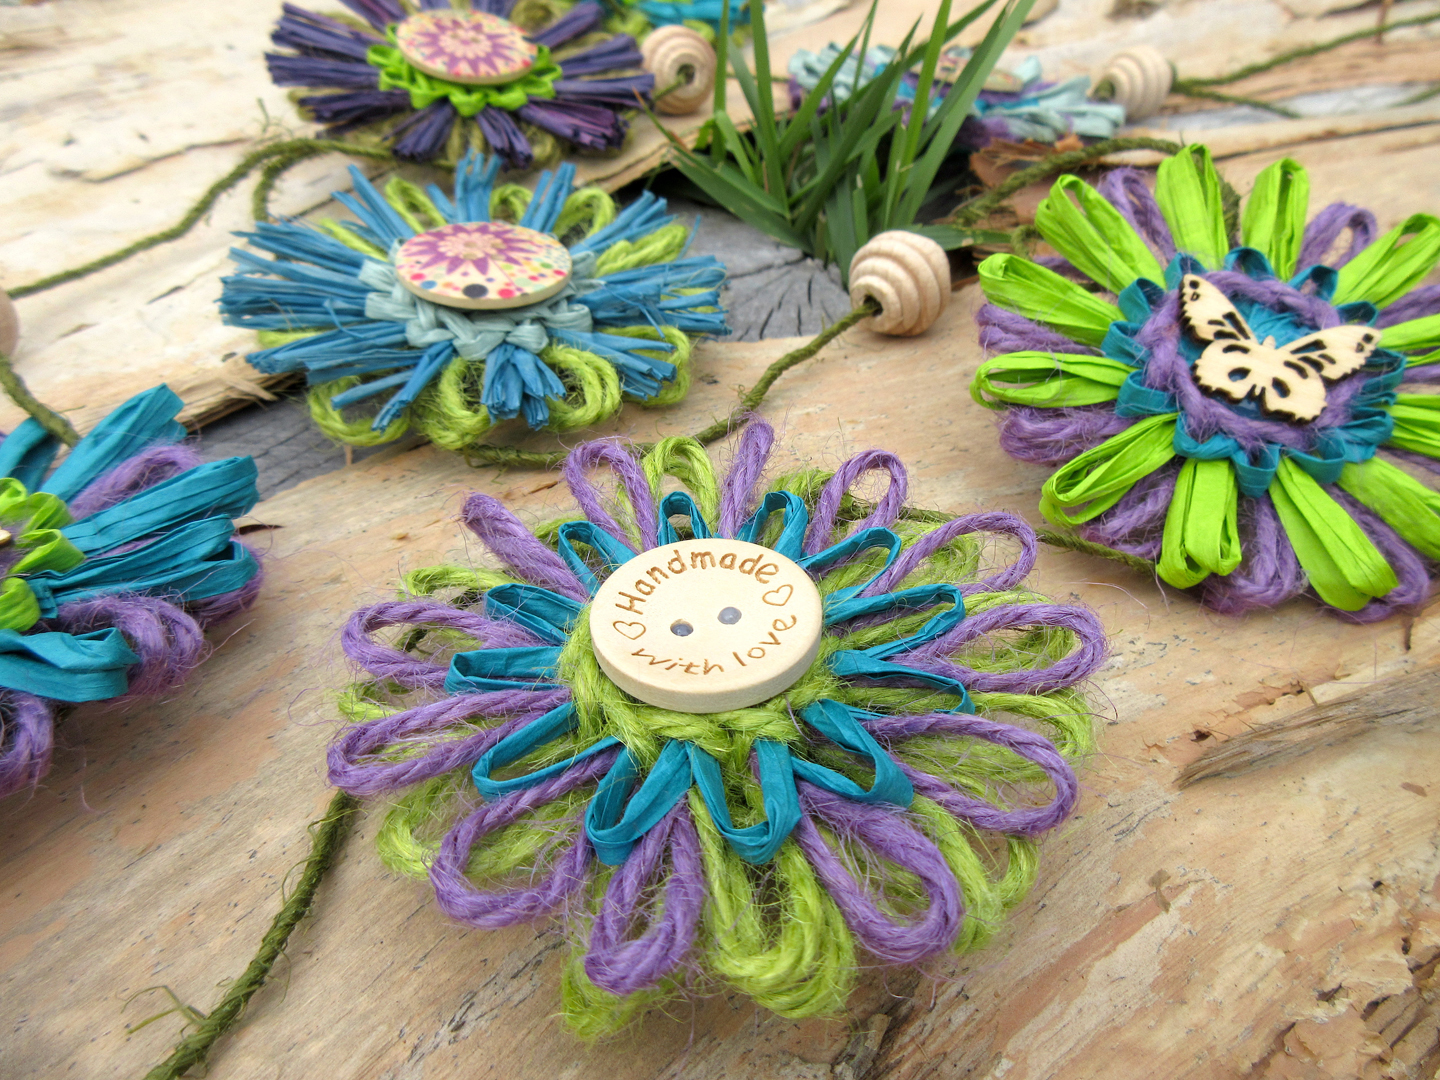 Teal, green and purple raffia and string floral garland handmade by M Decor Botanica